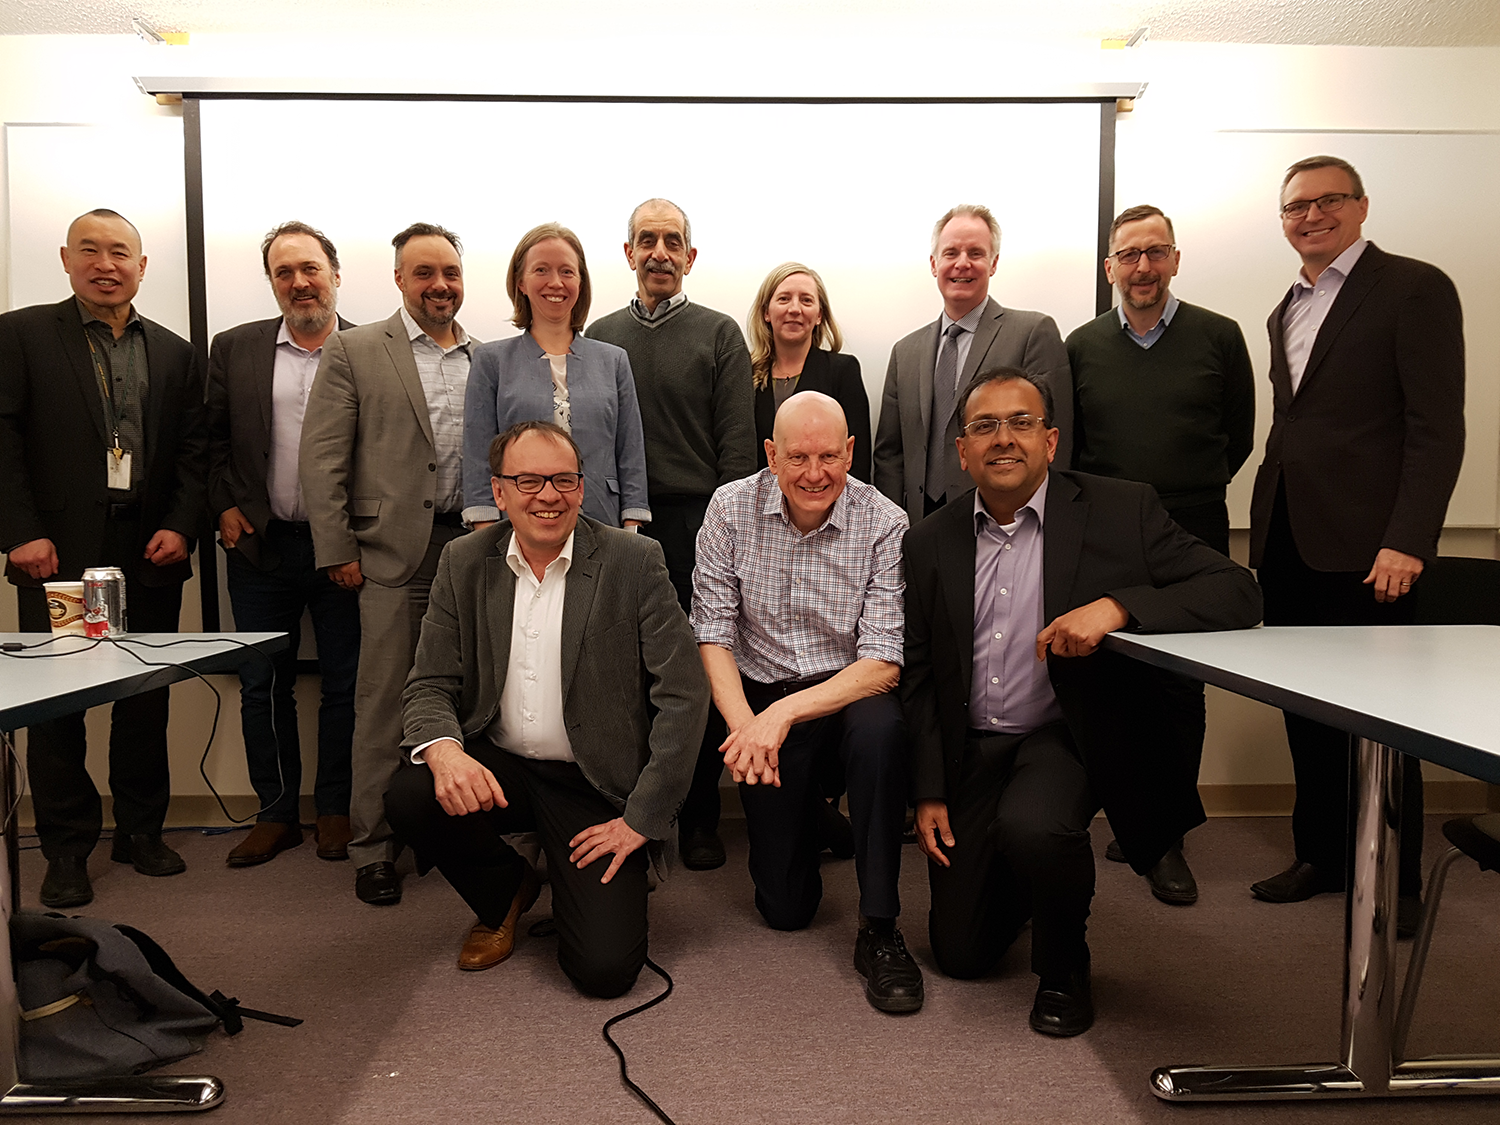 Photo: Initial Shared SOC meeting on April 11th 2018, at the University of Alberta.